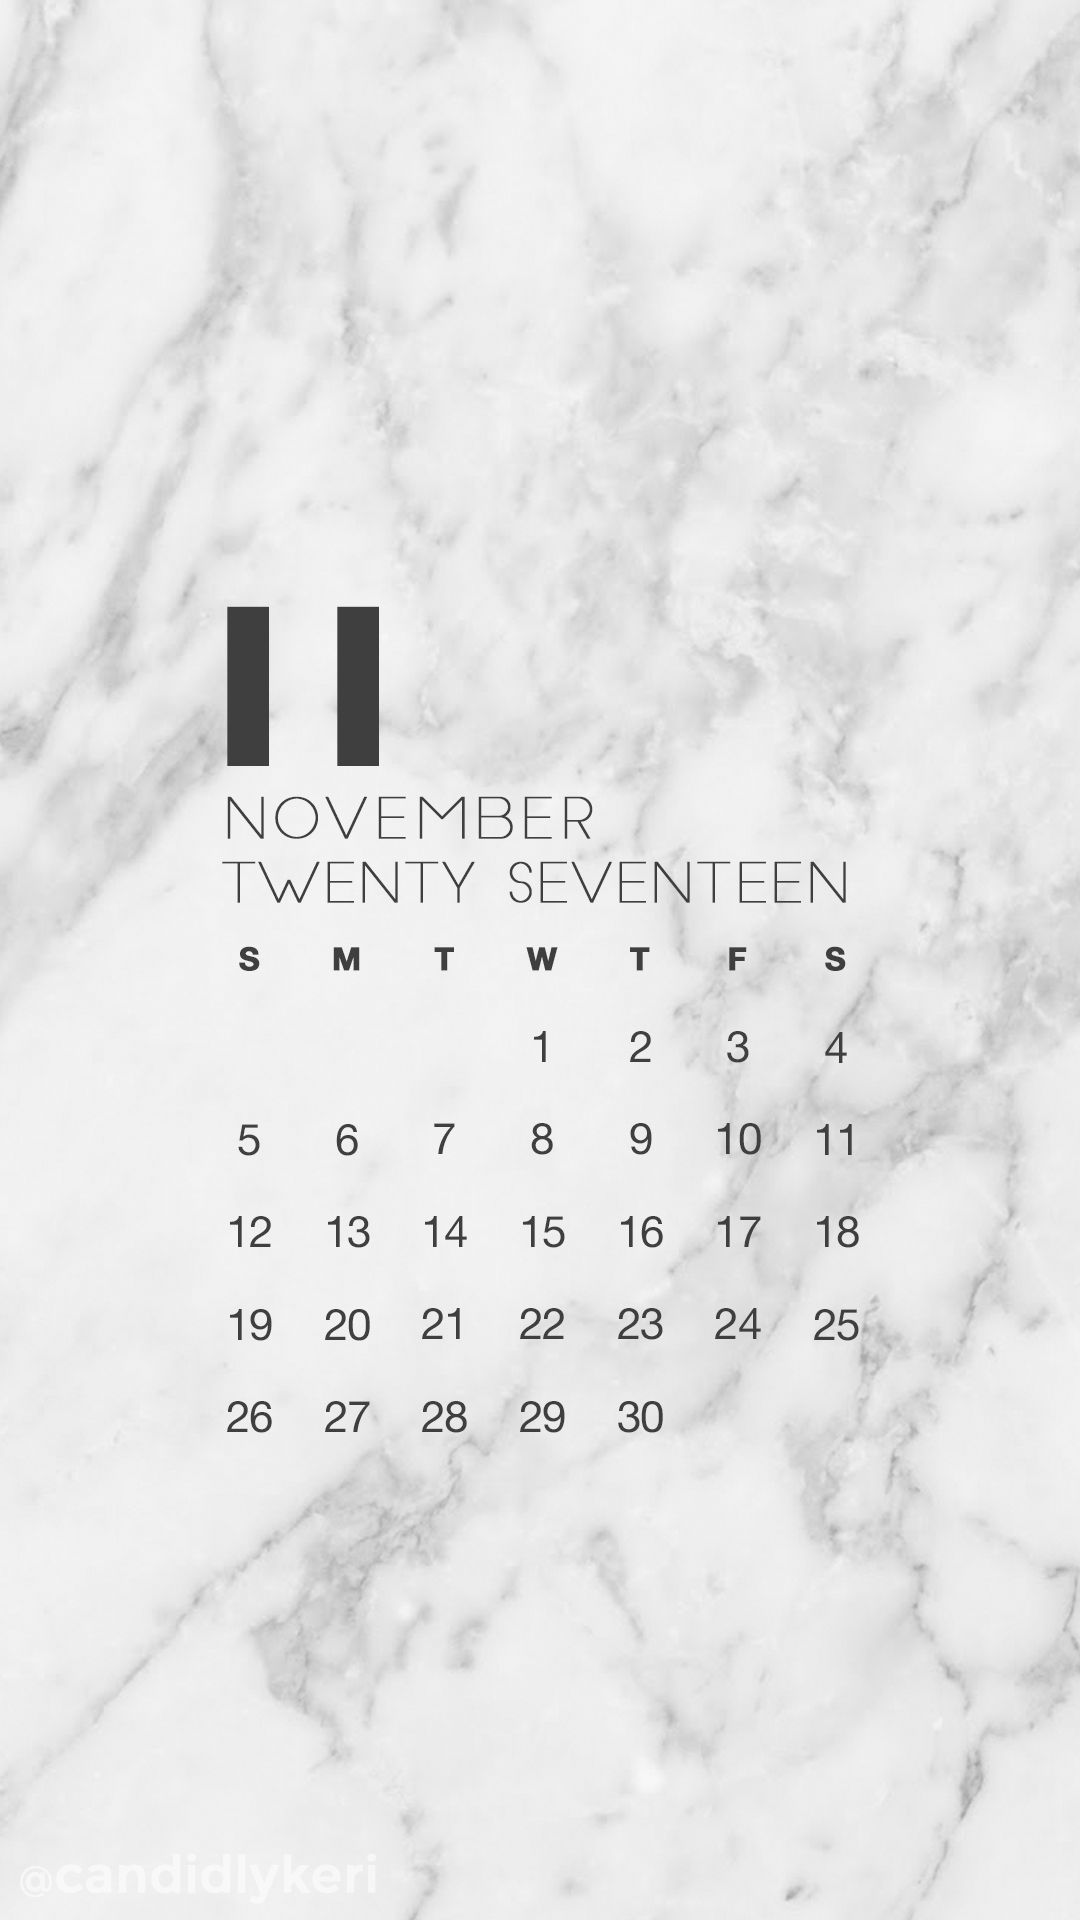 Marble Calendar Wallpaper November : Marble november calendar wallpaper you can download